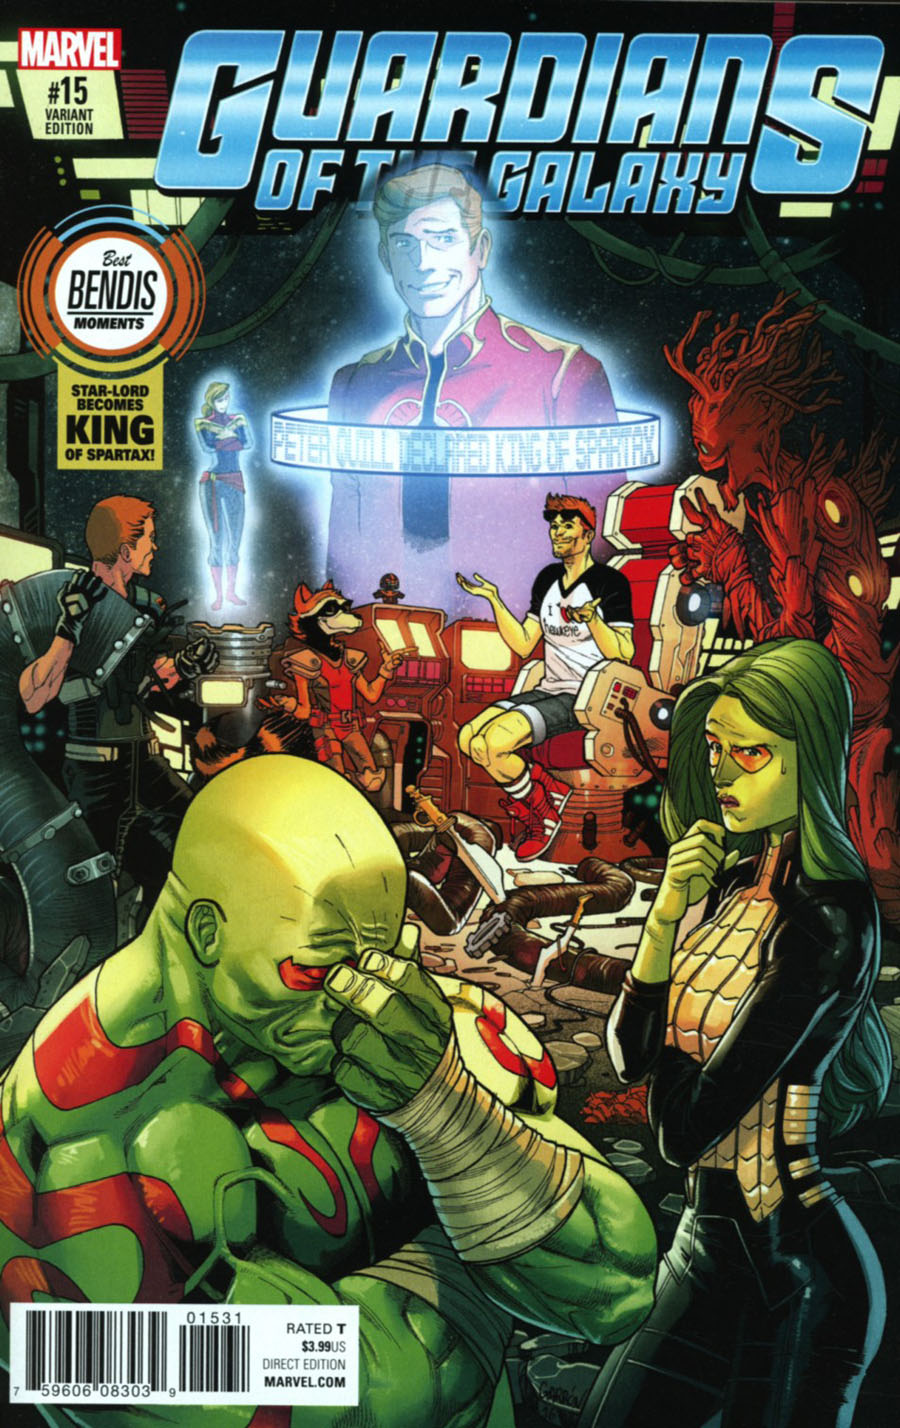 Guardians Of The Galaxy Vol 4 #15 Cover B Variant Best Bendis Moments Cover (Marvel Now Tie-In)